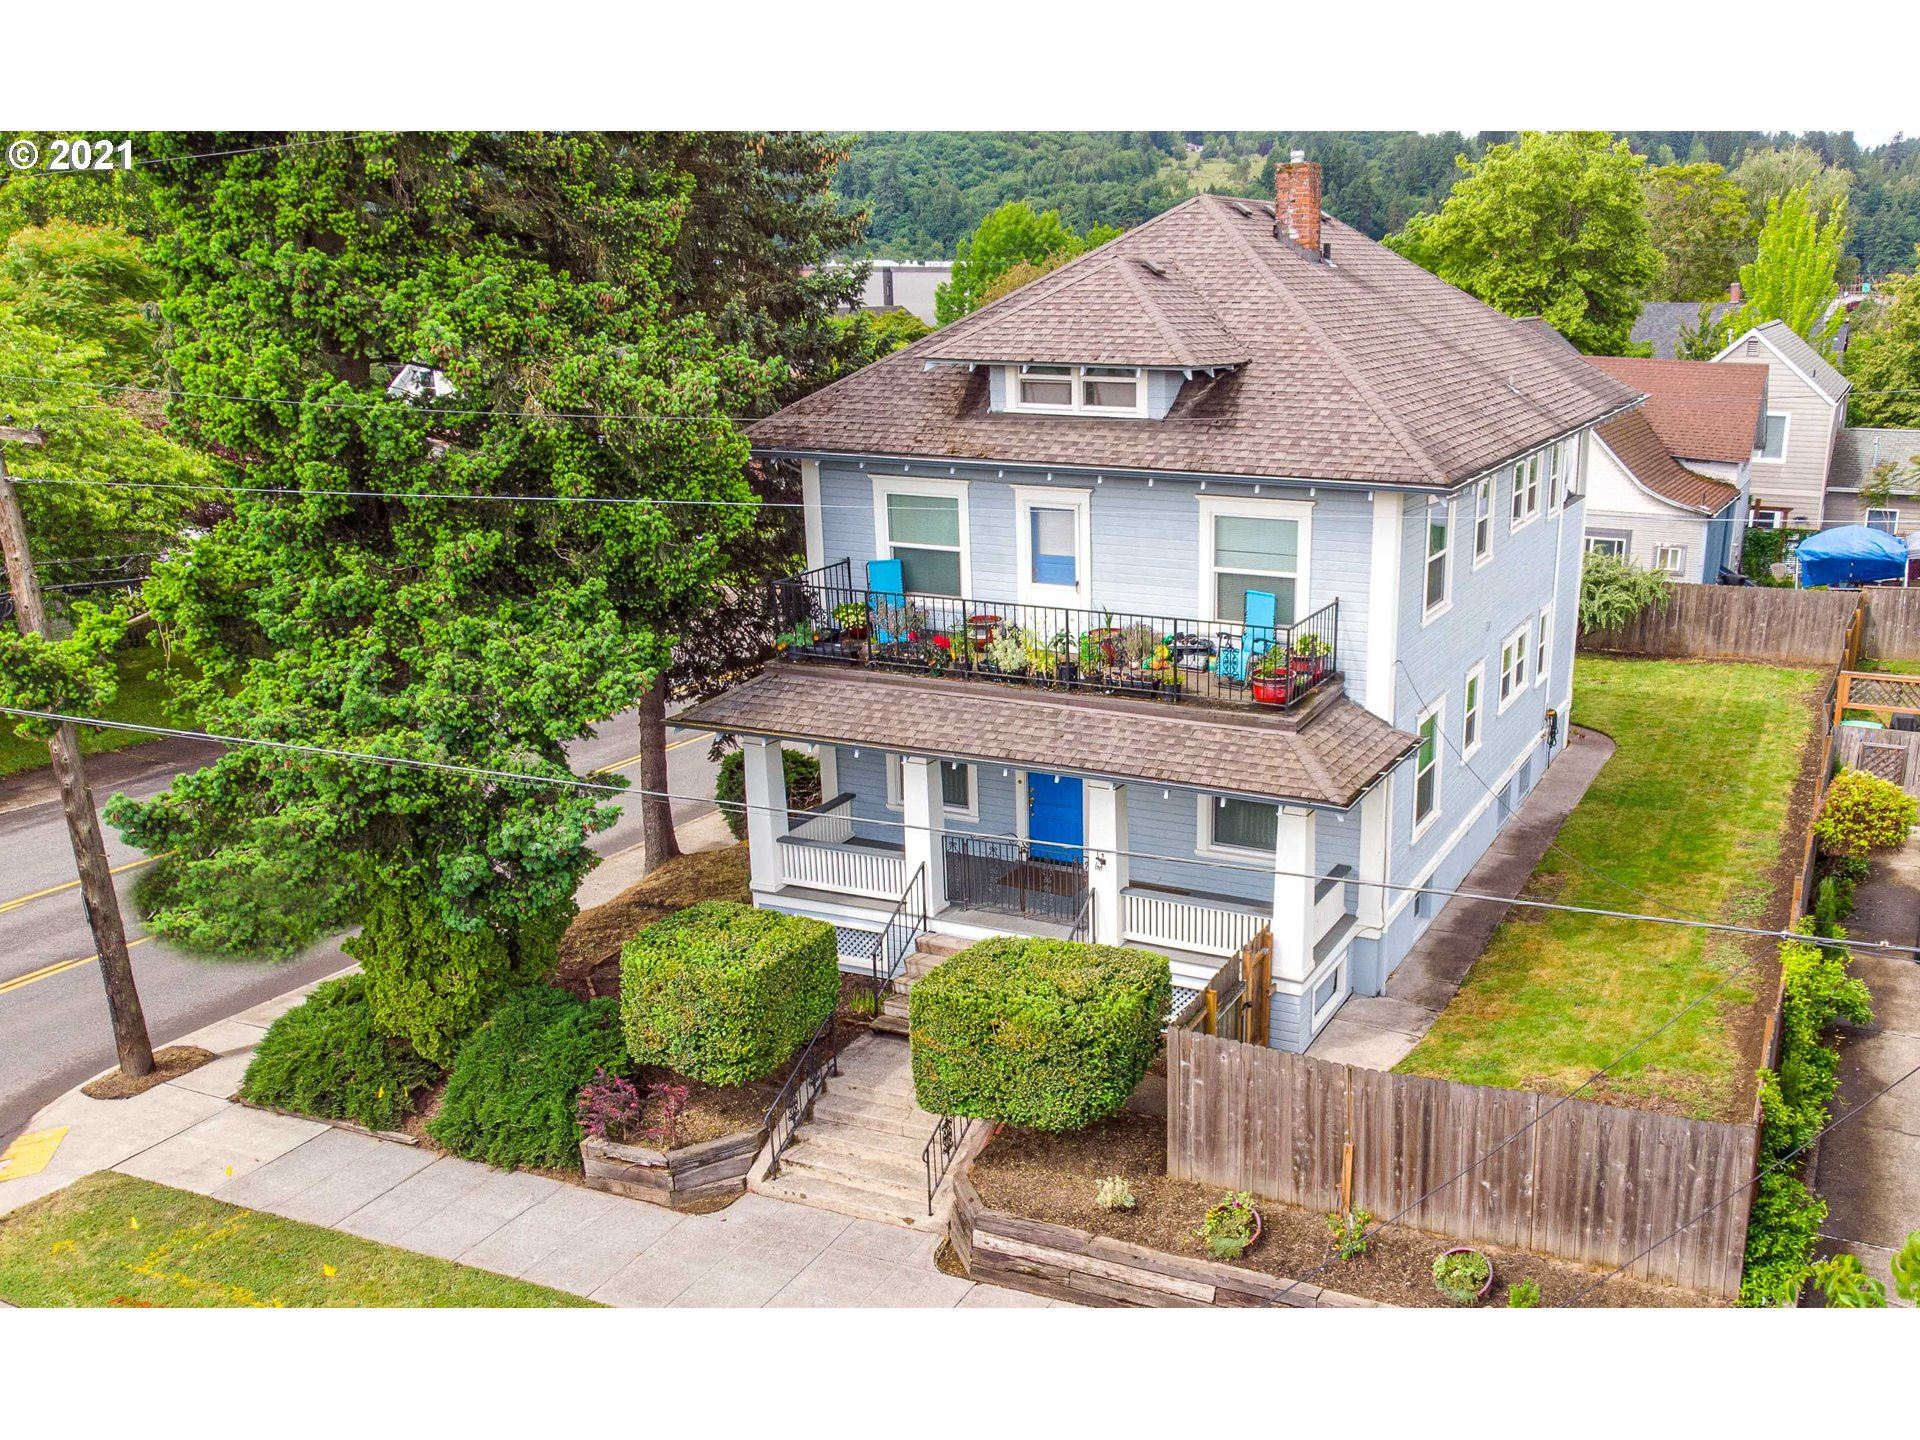 8085 SE 9TH AVE, Portland, OR 97202 - MLS#: 21597729